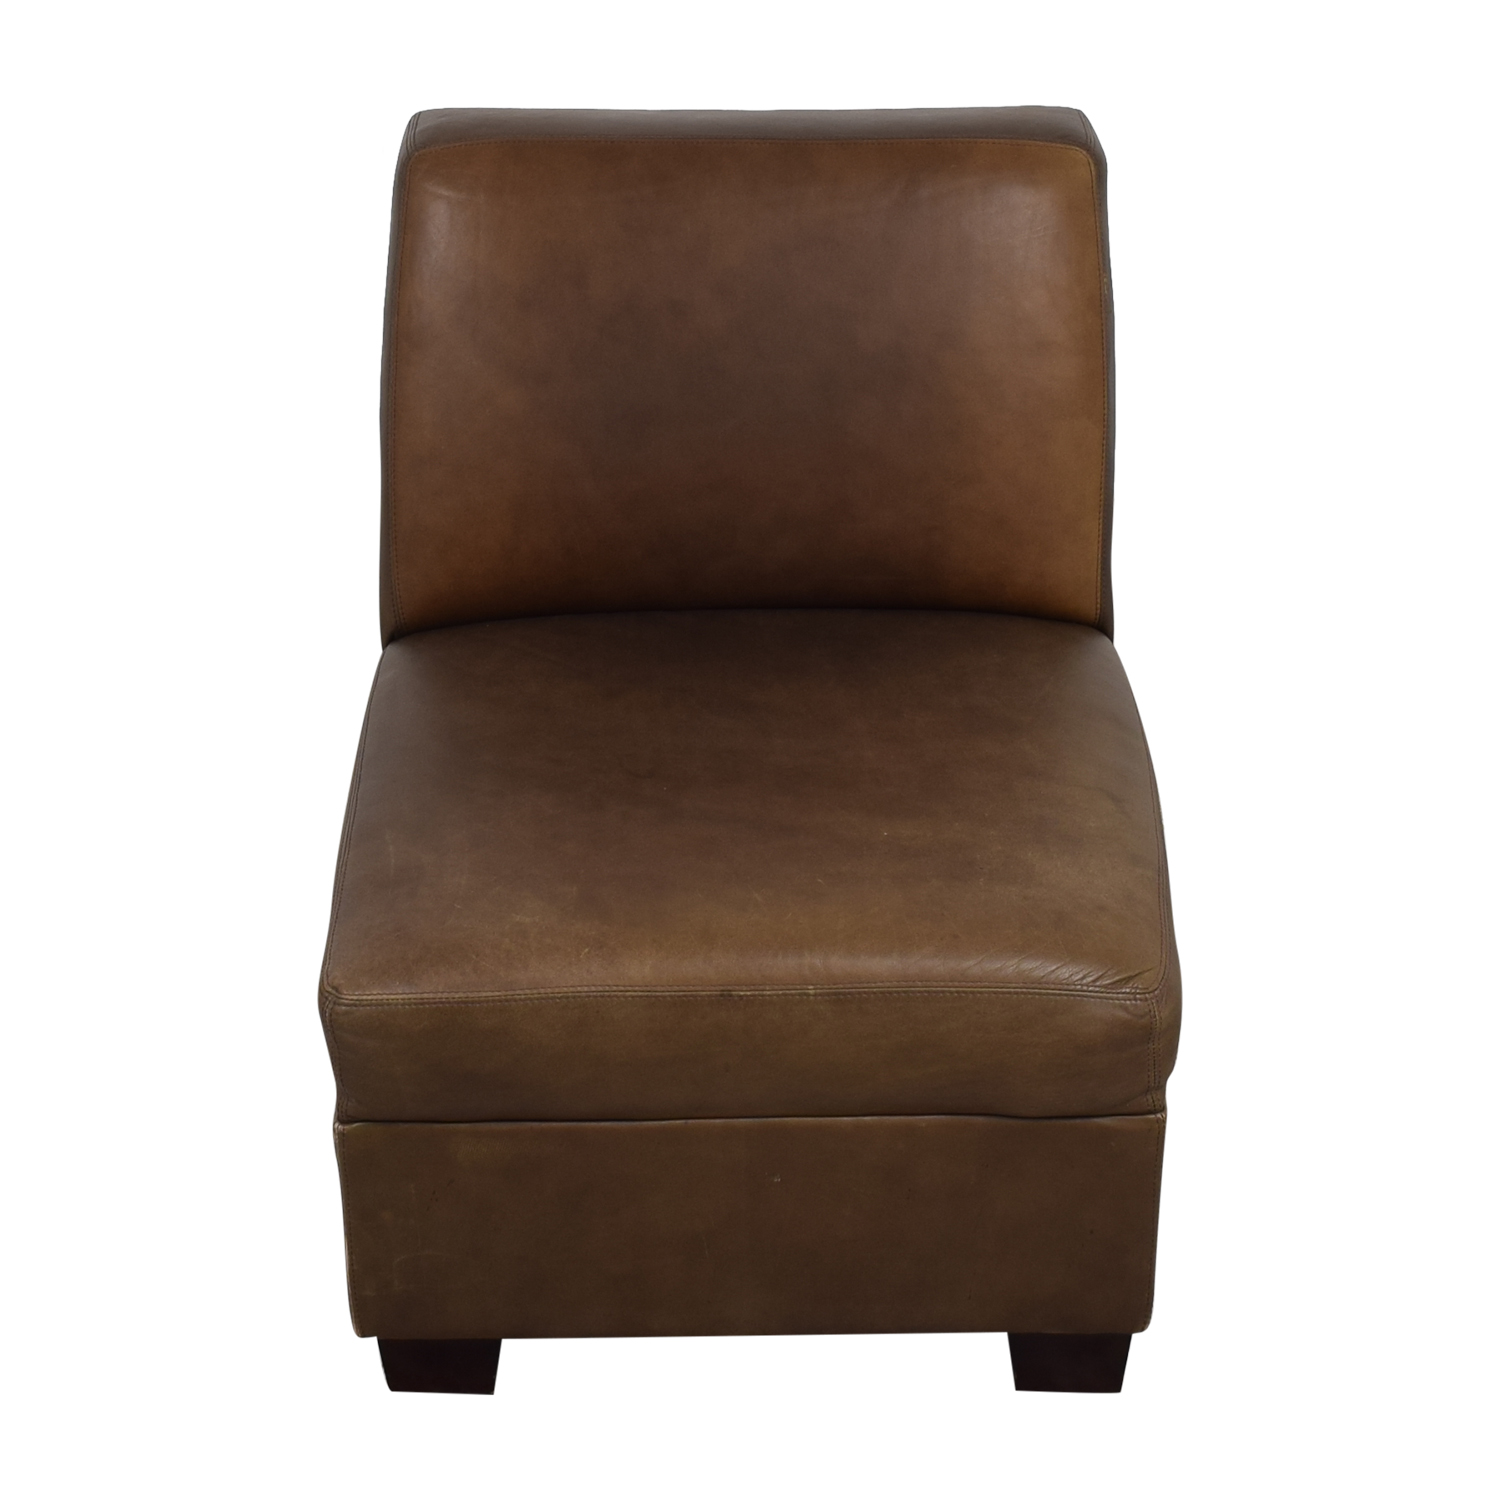 shop Pottery Barn Trevor Slipper Chair Pottery Barn Accent Chairs